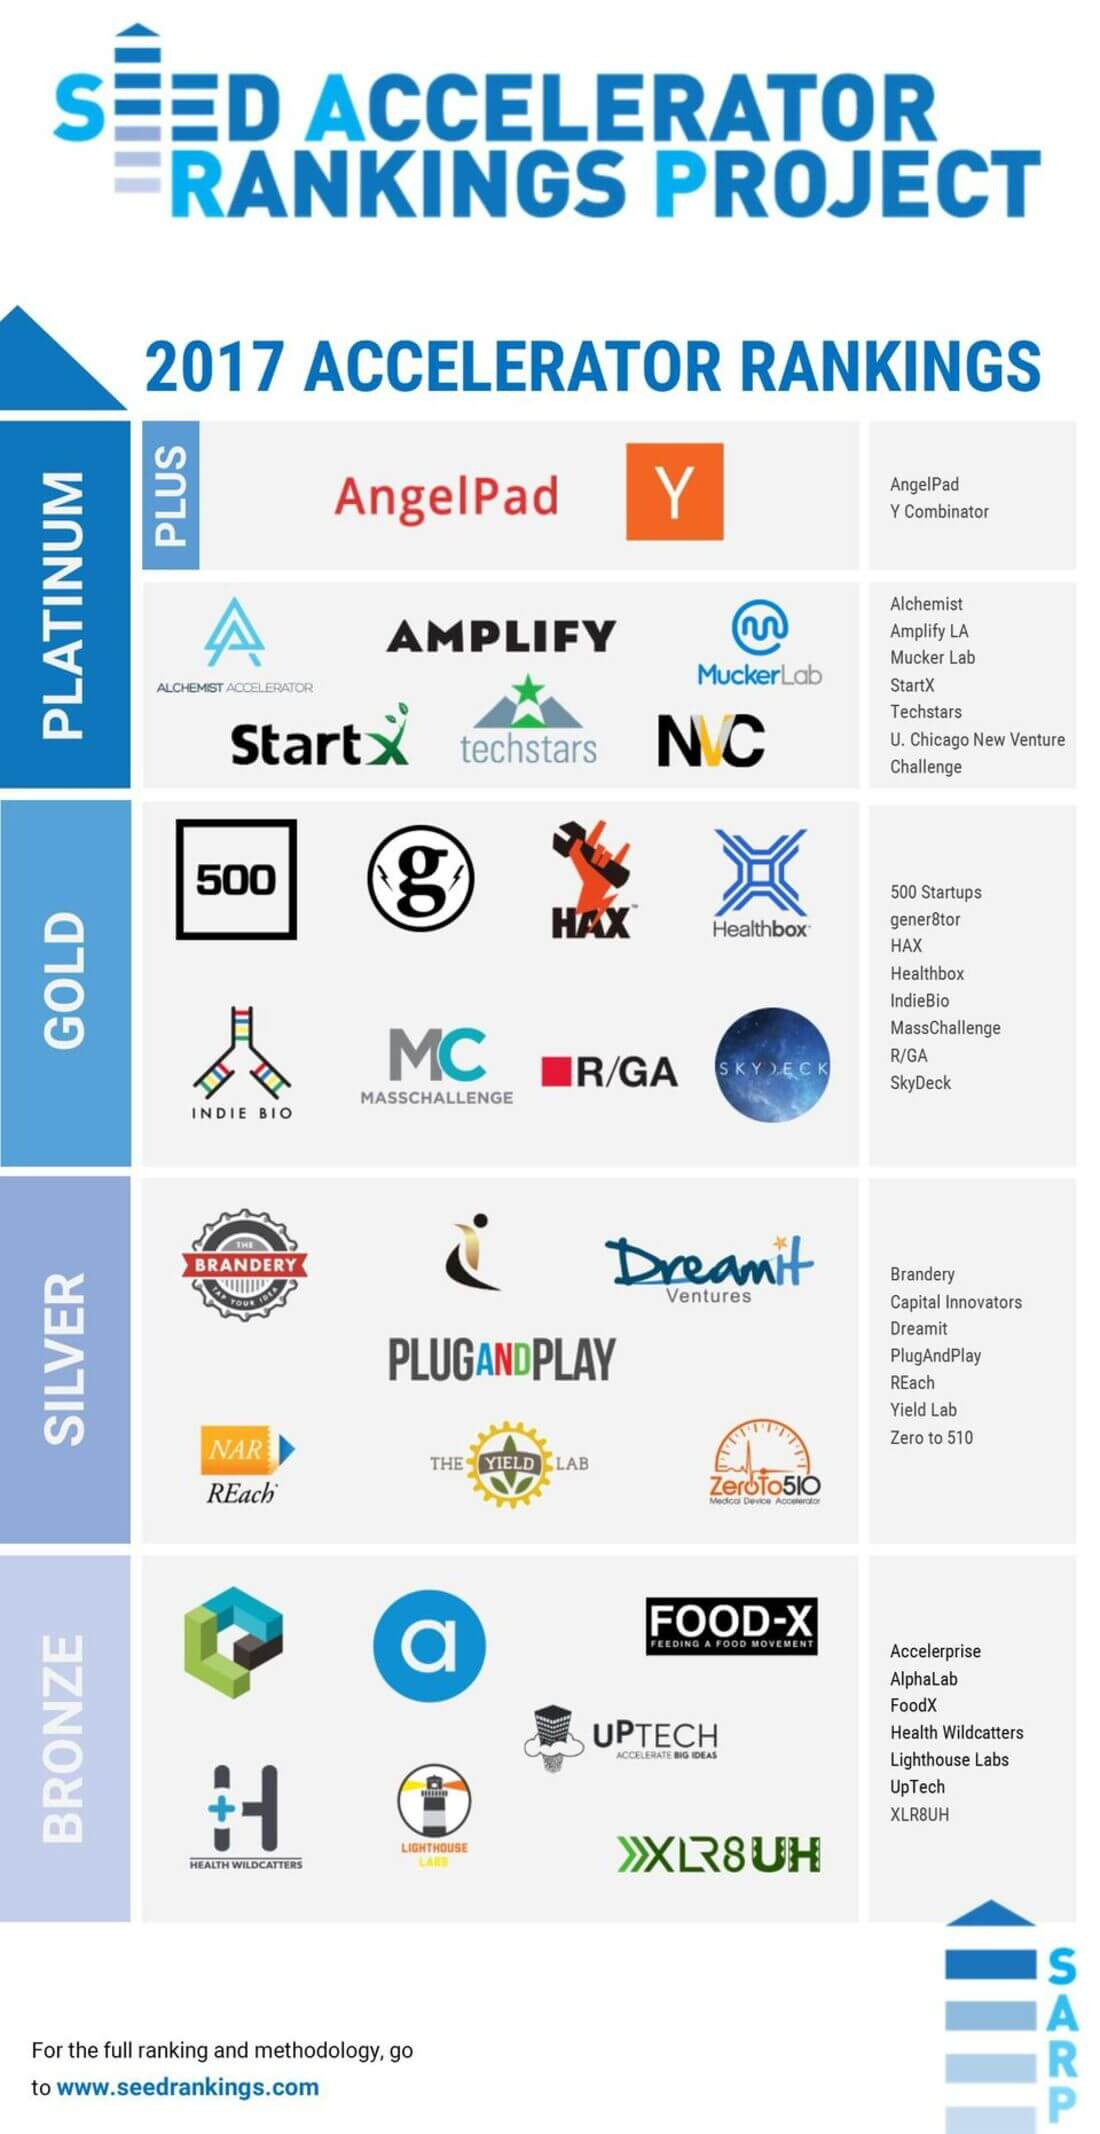 Image contains a seed accelerator rankings project